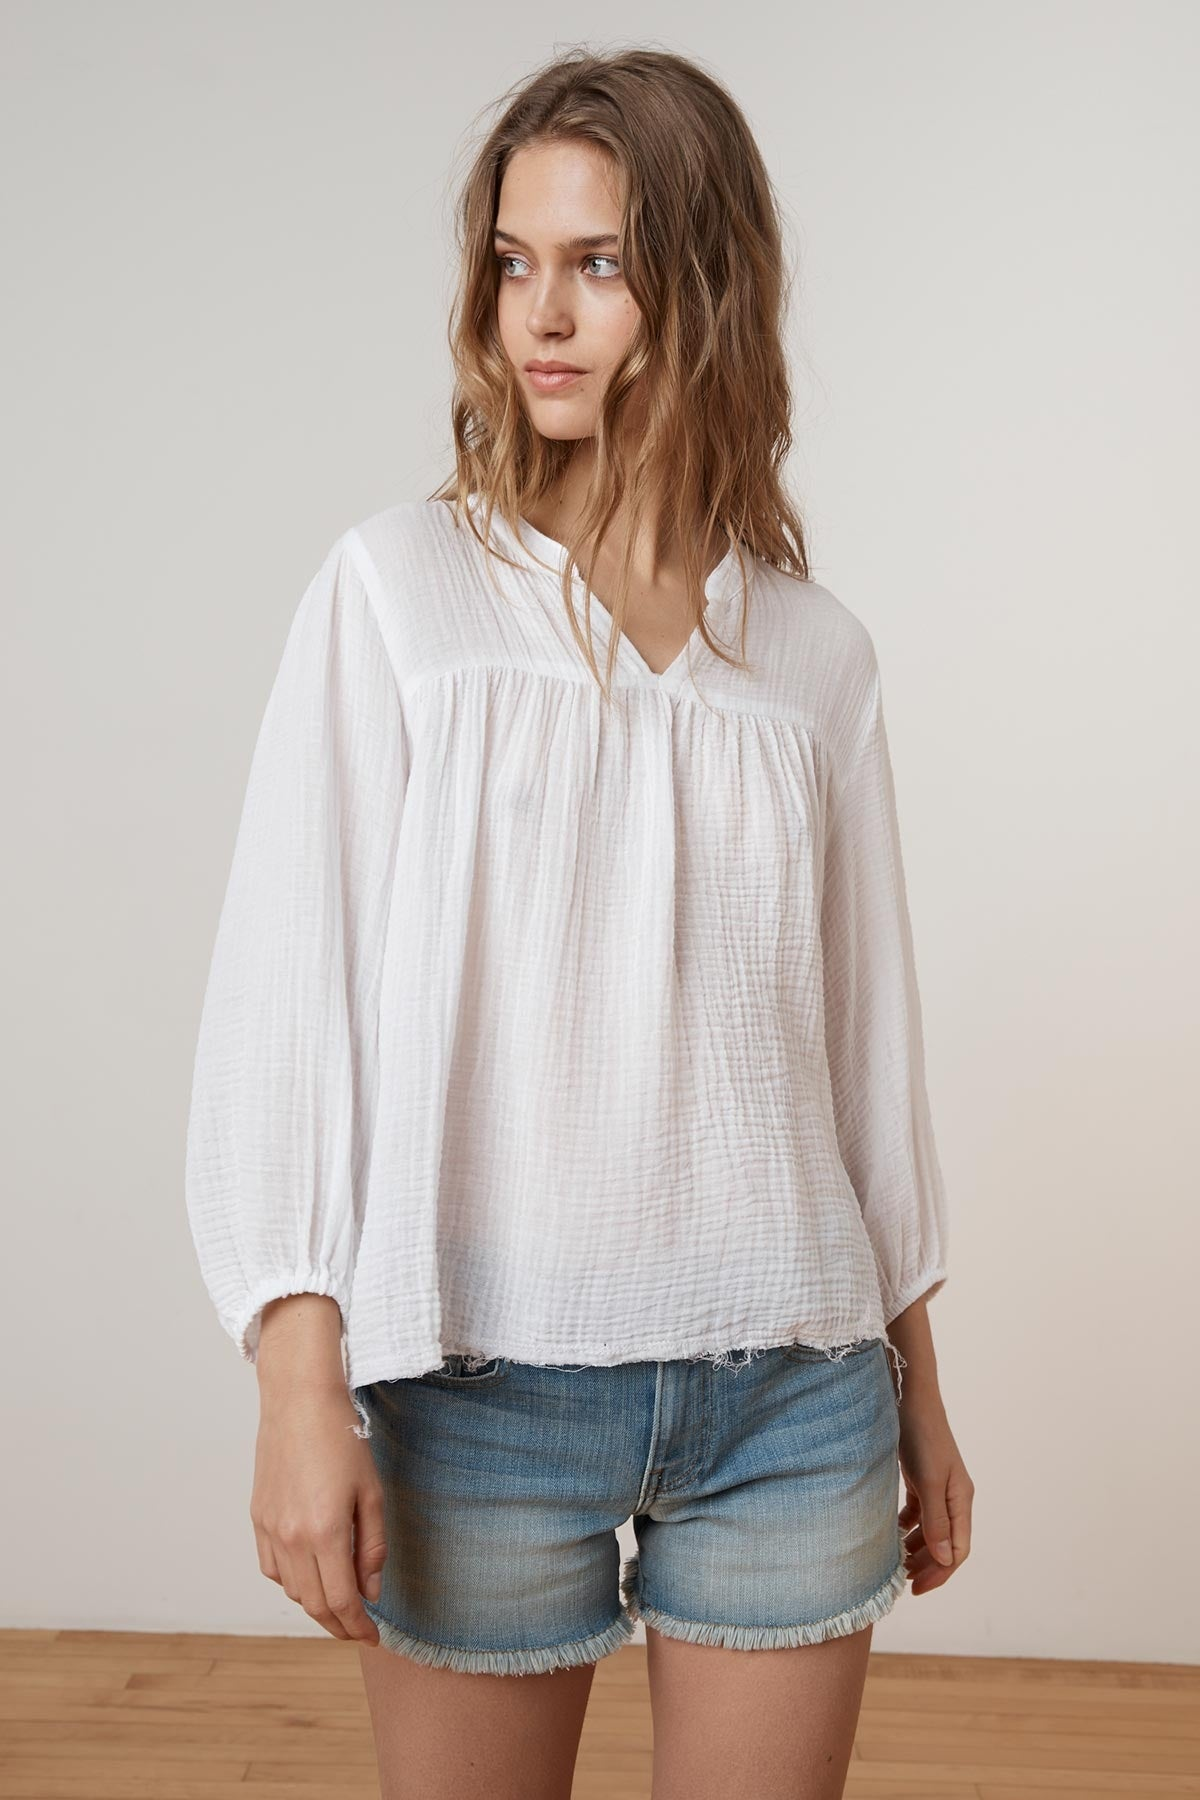 MIFFY SOFT COTTON GAUZE PEASANT TOP